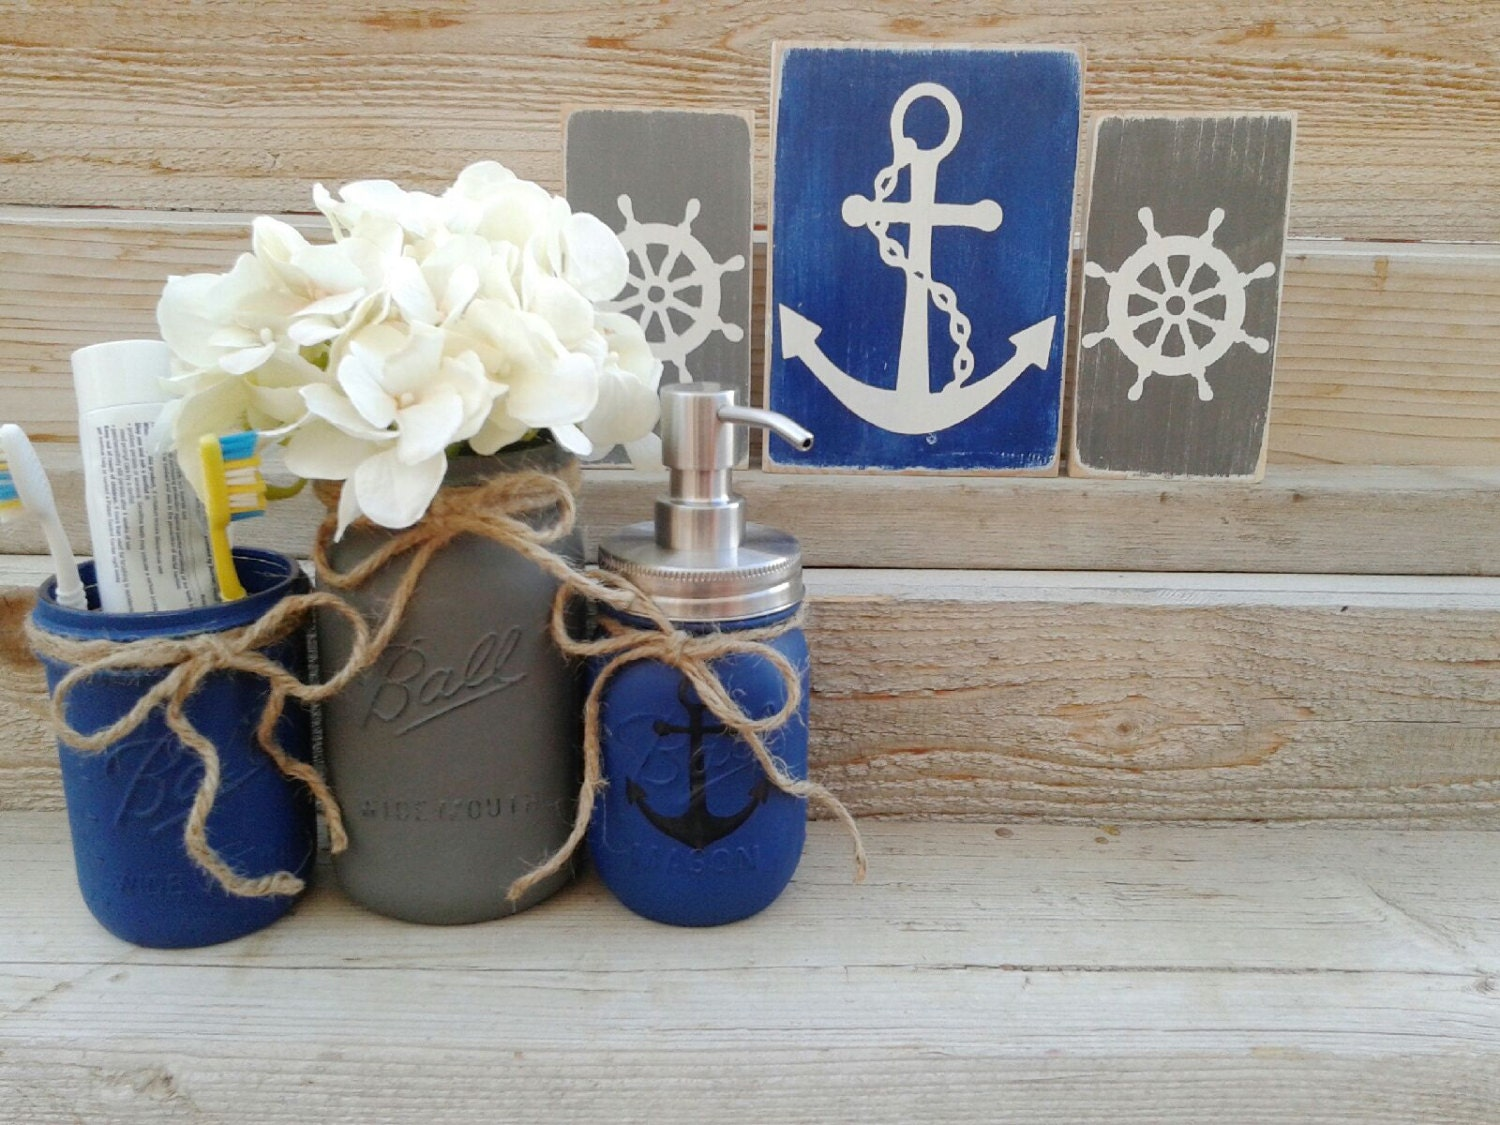 Costal Bathroom Decor: Anchor Decor Rustic Nautical Bathroom Decor Anchor Bathroom